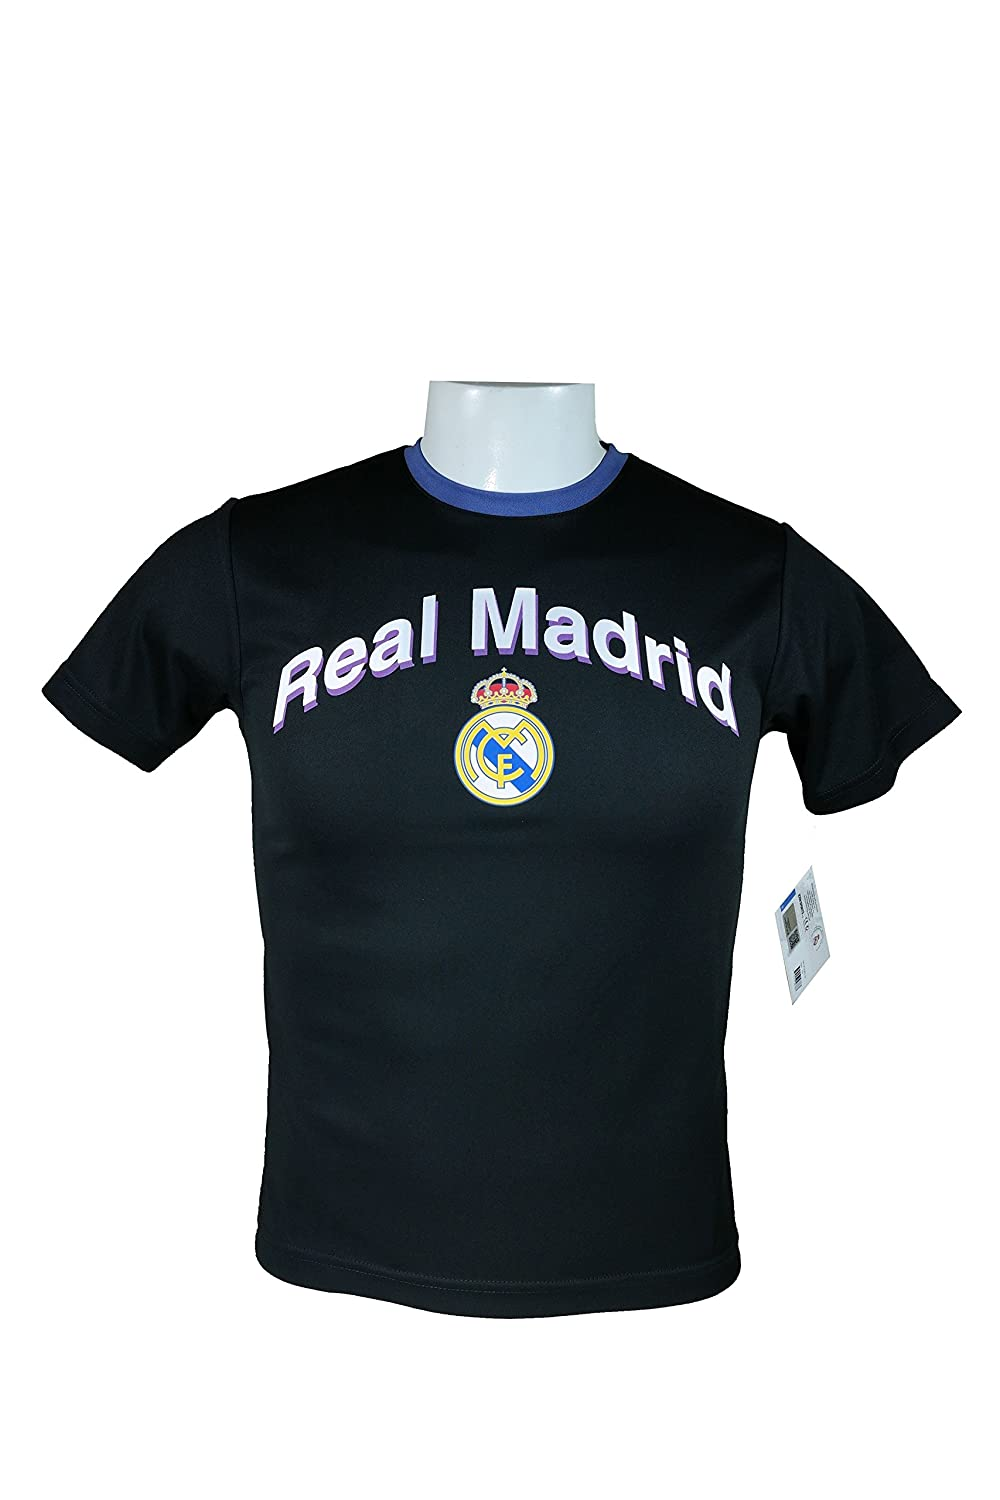 Real Madrid OfficialユースサッカートレーニングパフォーマンスPoly Jersey – y014 B074L2GRSNYouth